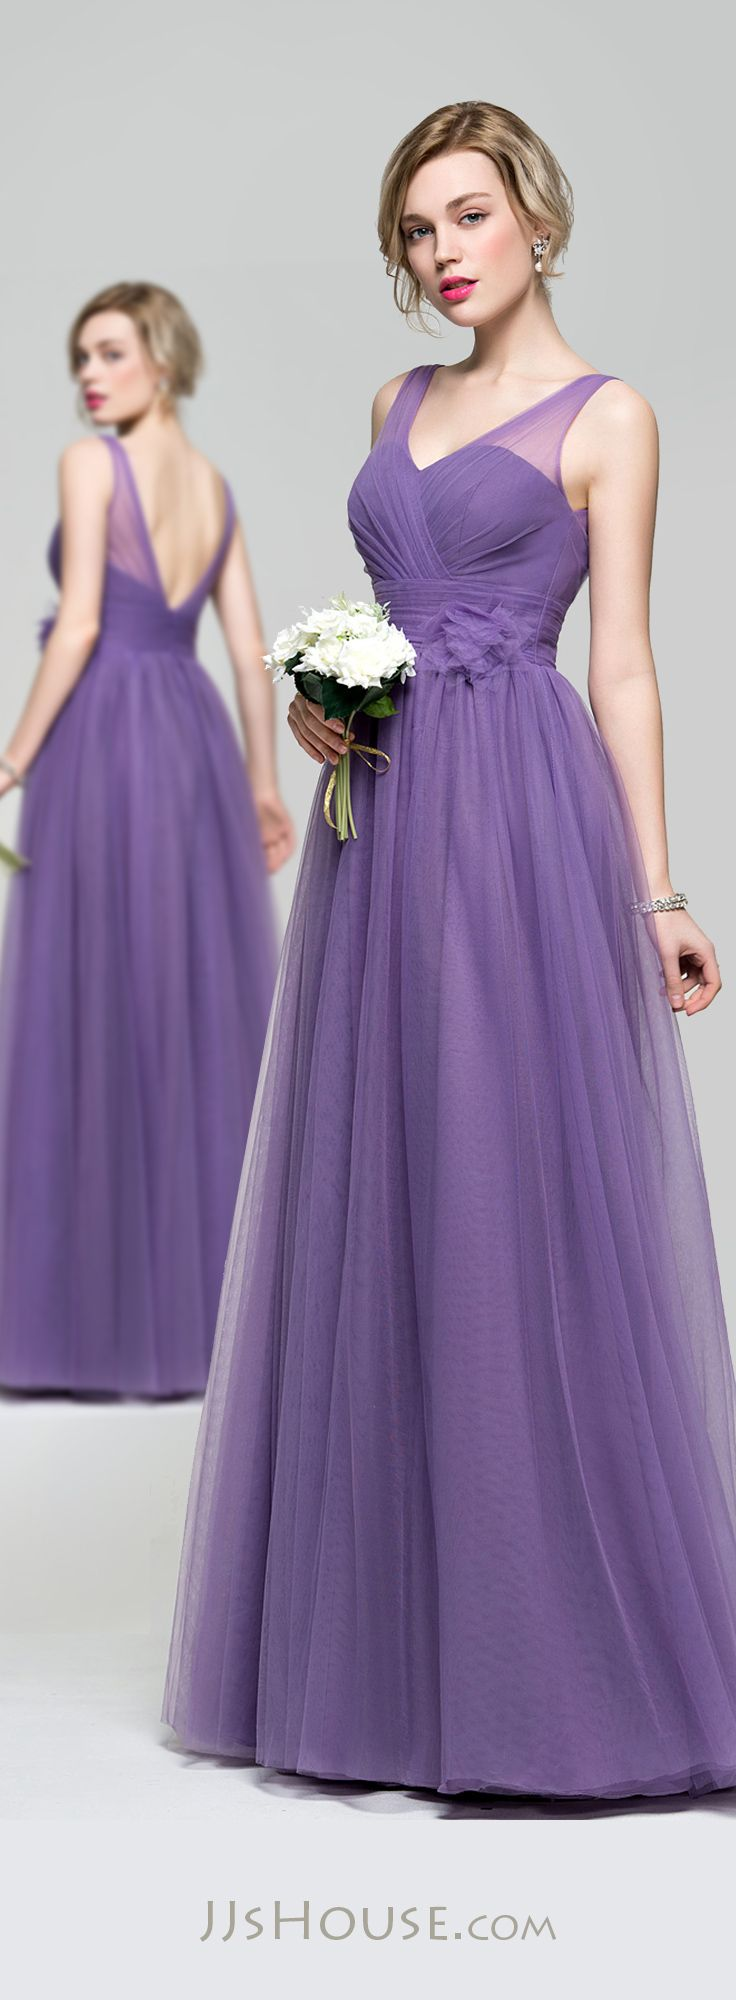 39 best Bridesmaid dresses images on Pinterest | Flower girls ...